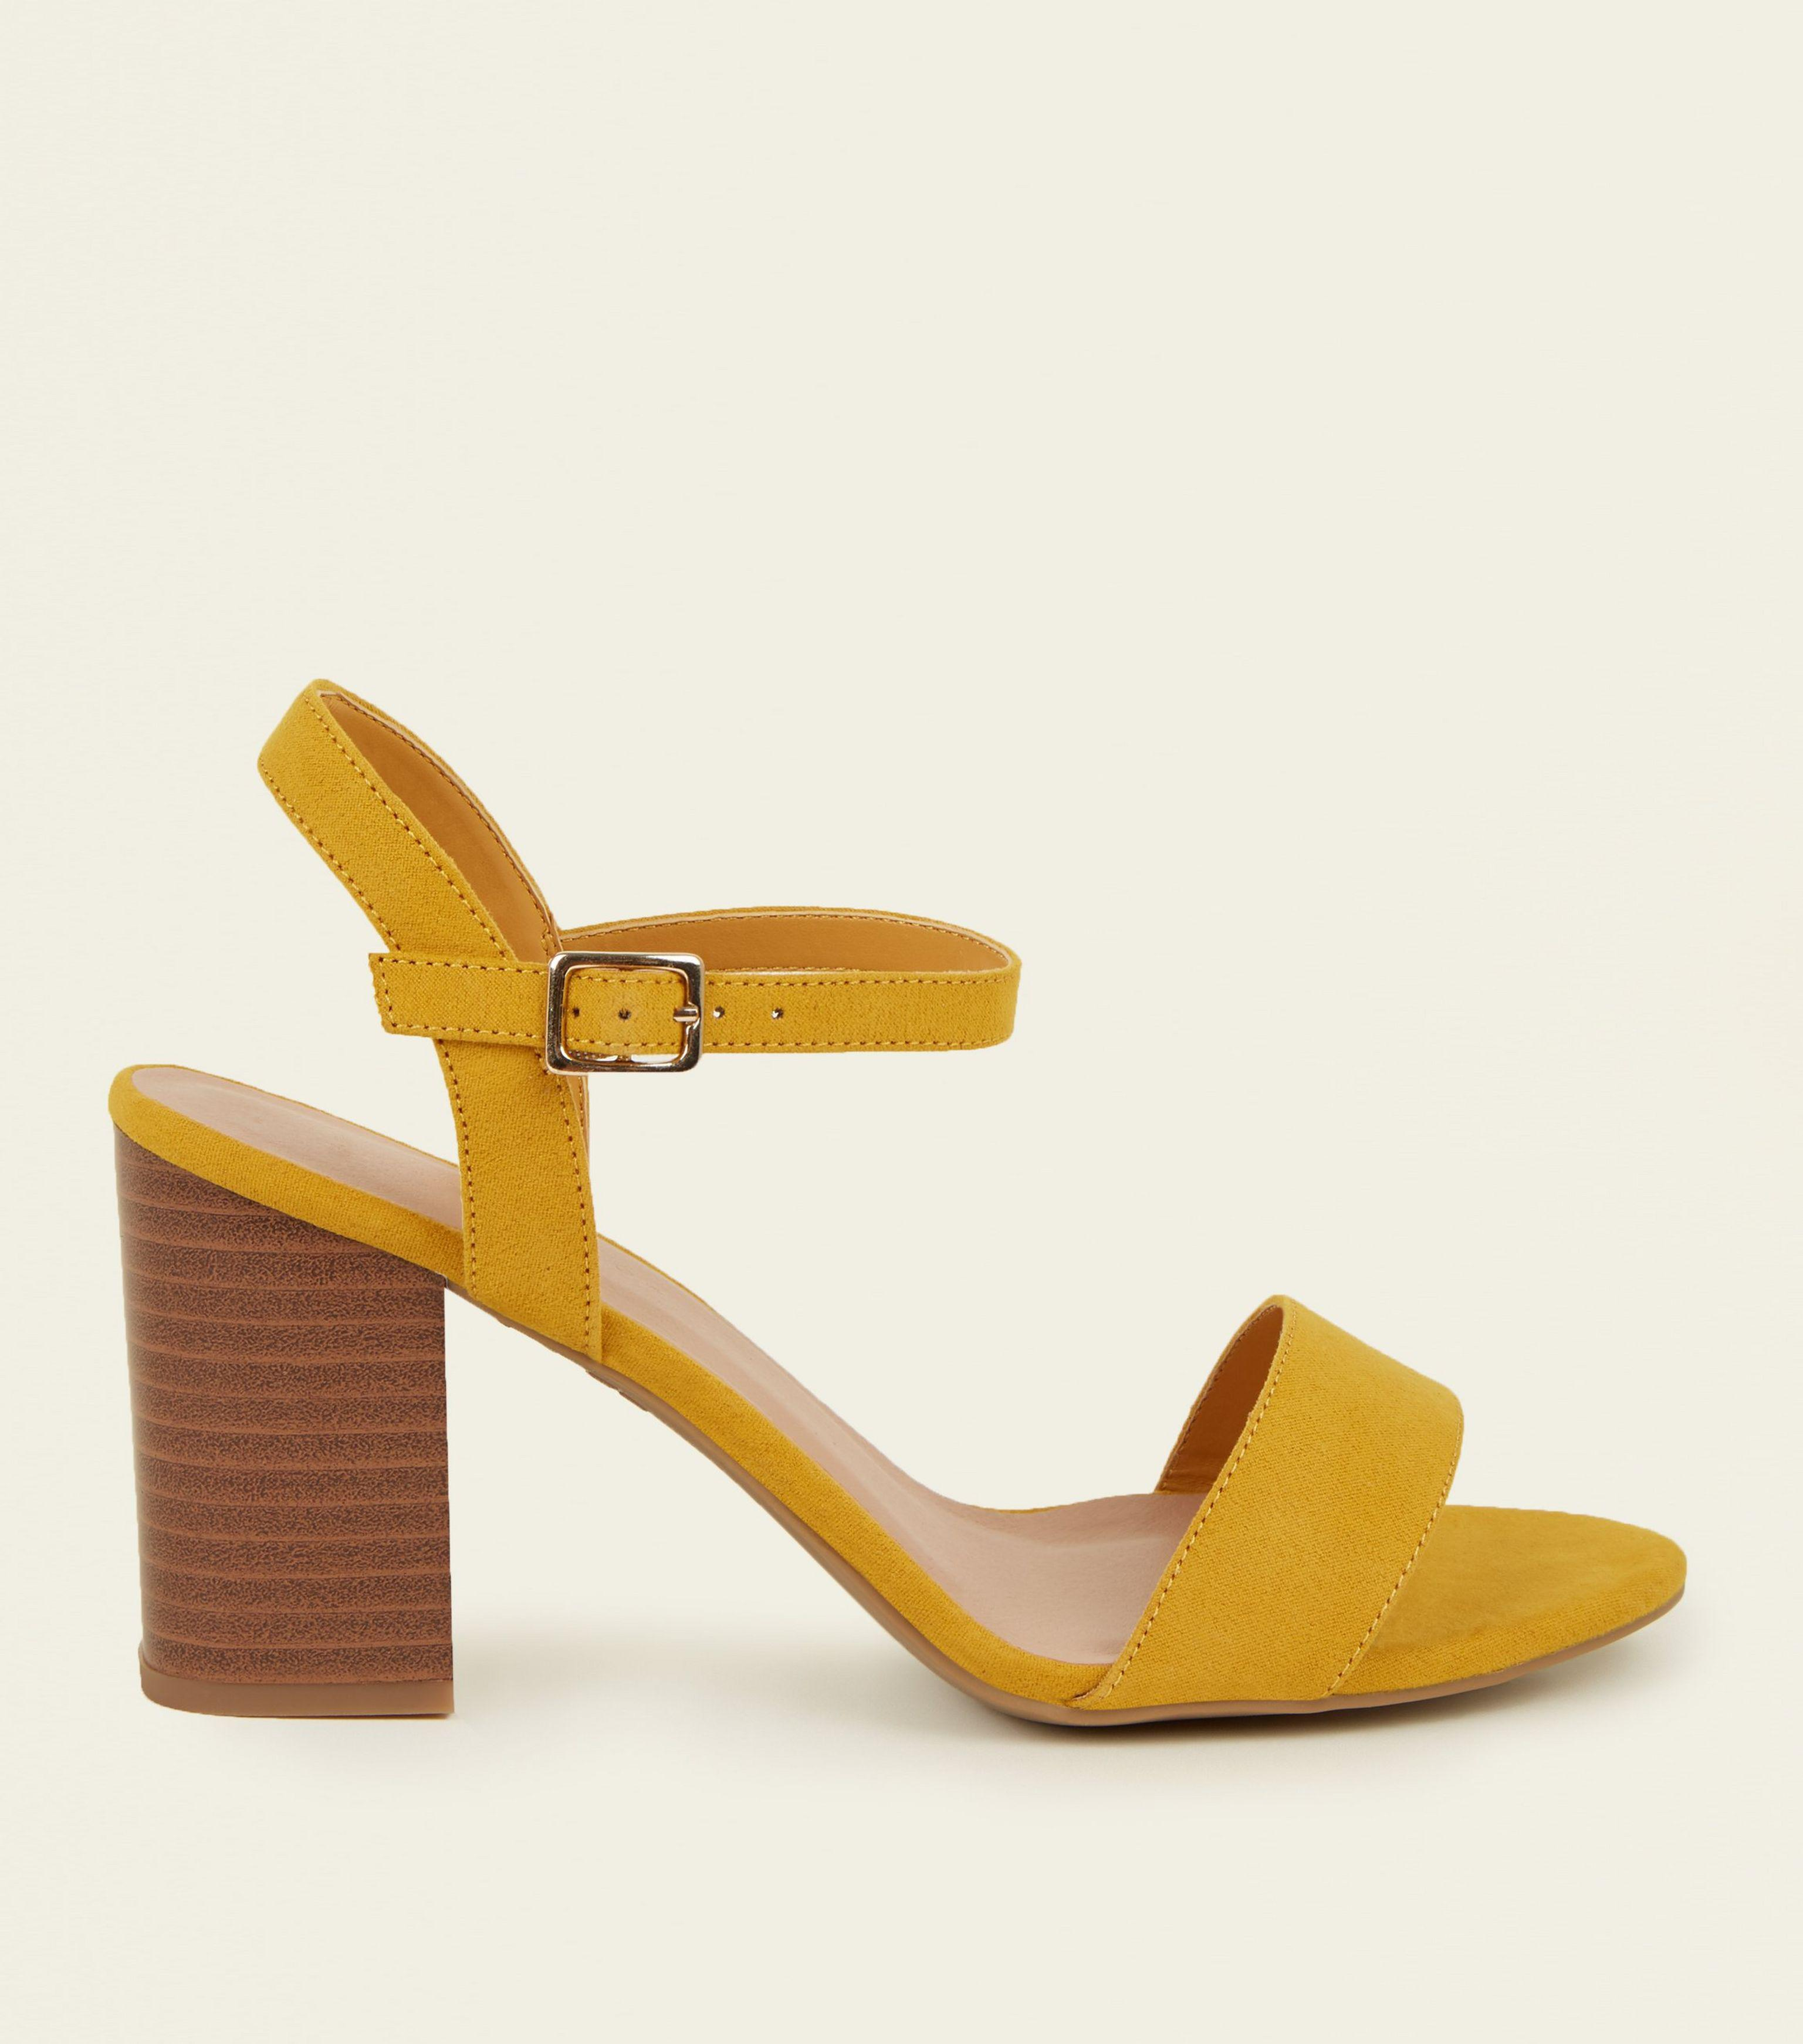 dd6d66d9a1a9 New Look Wide Fit Mustard Suedette Wood Heel Sandals in Yellow - Lyst